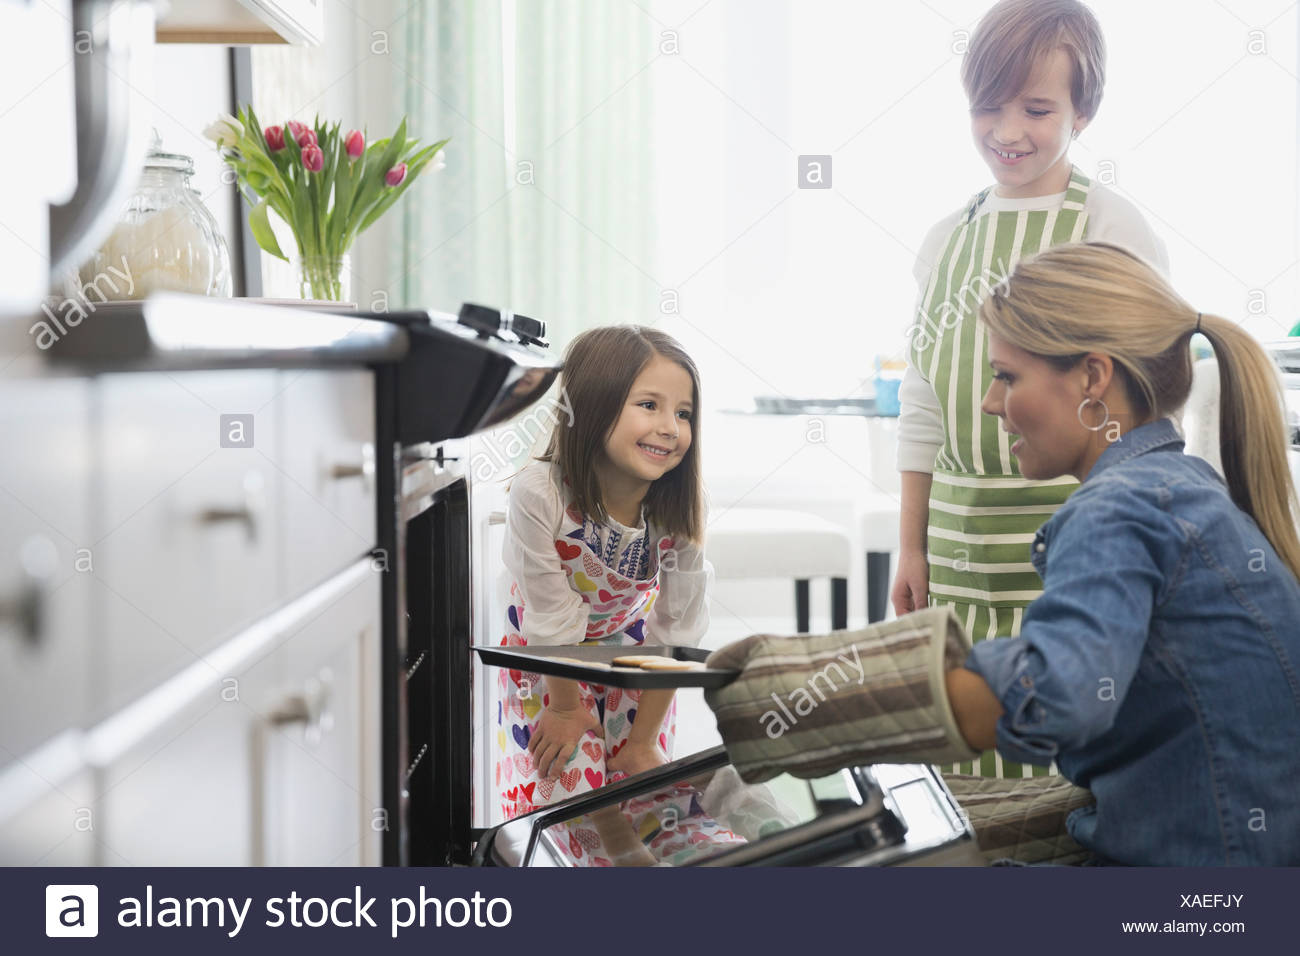 Children and mother baking cookies in kitchen - Stock Image